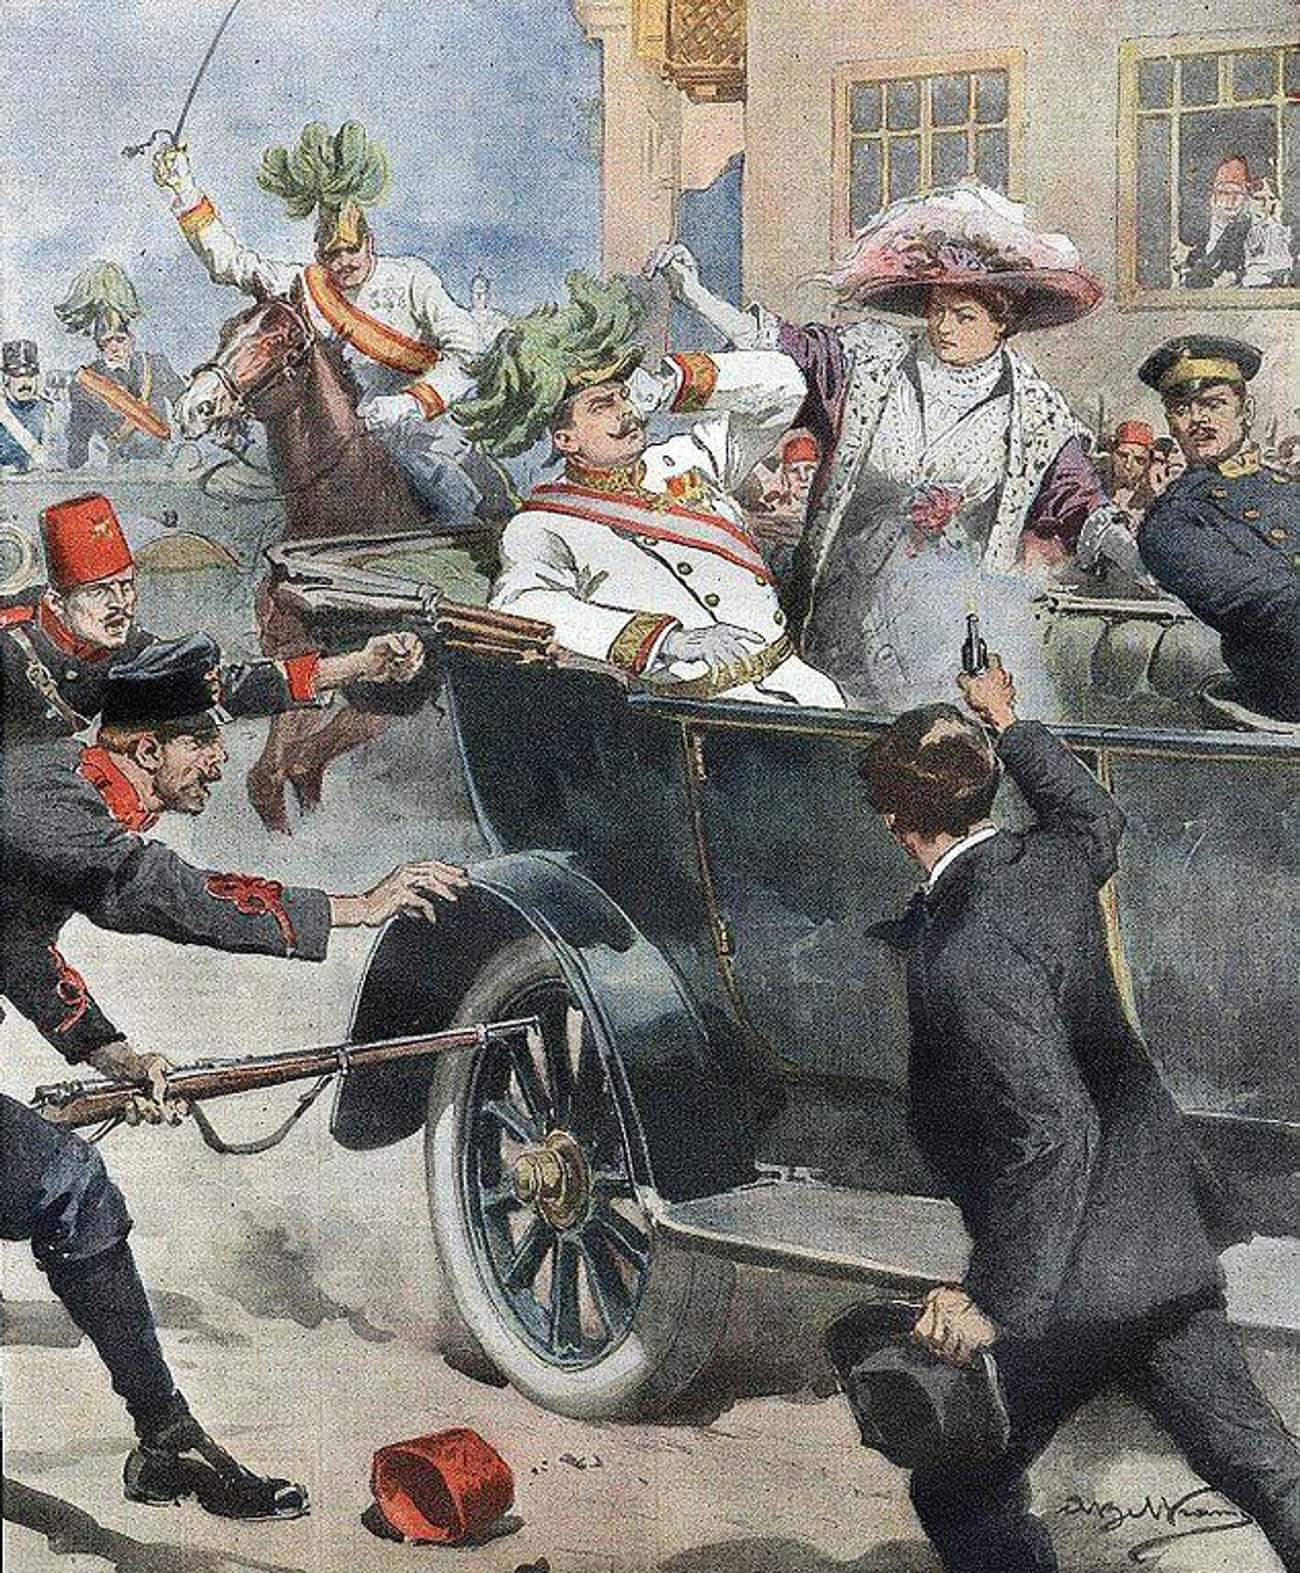 The Assassination Of Archduke  is listed (or ranked) 1 on the list The 12 Most Influential Royal Assassinations In World History